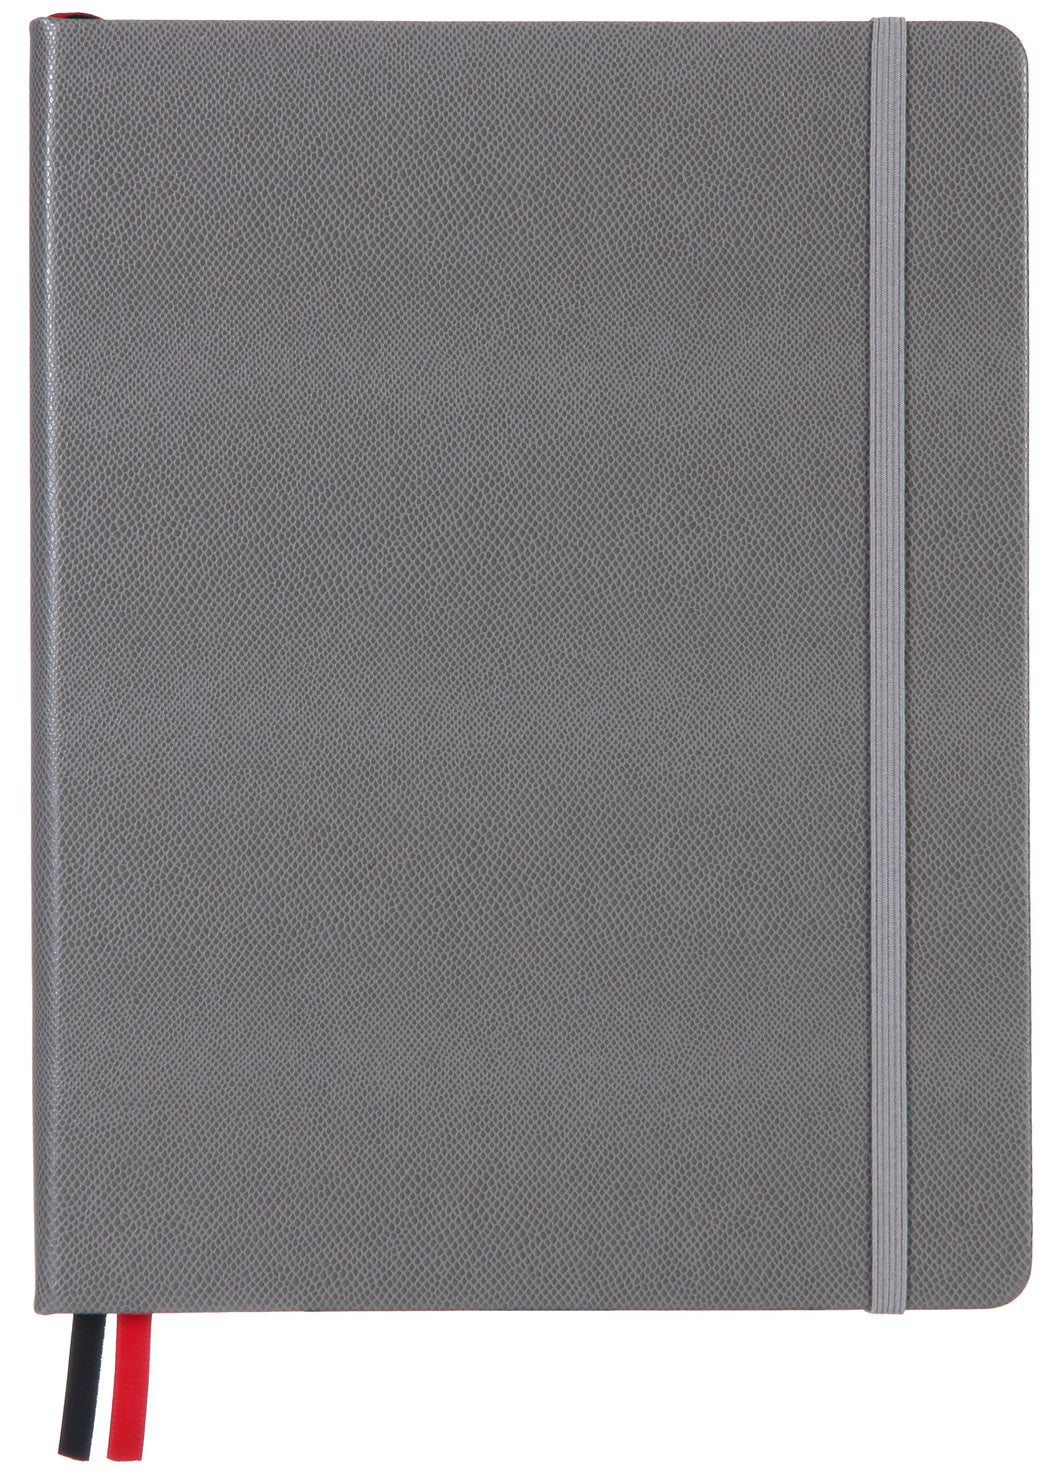 A4 Hardcover LINED Notebook Journal, Large Ruled